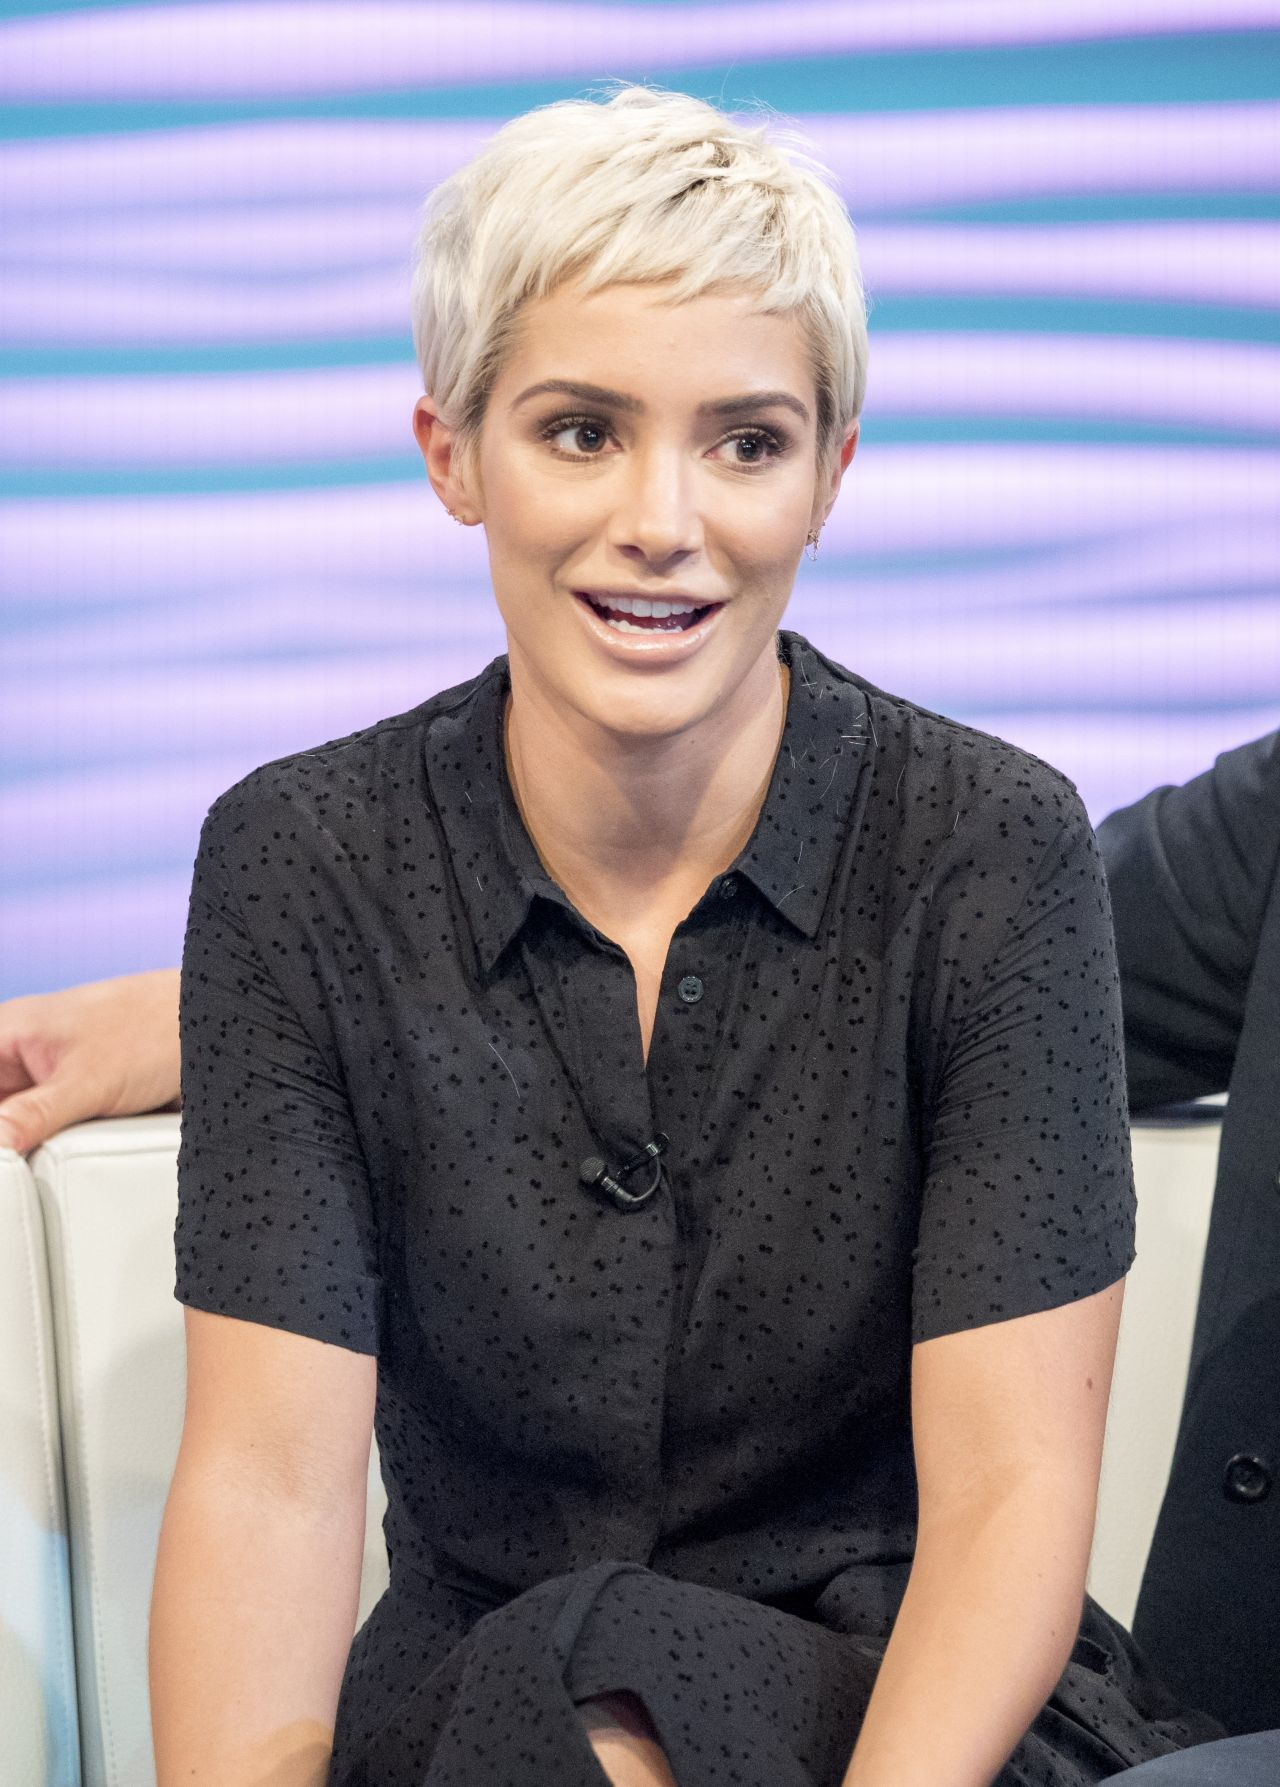 Frankie Bridge Quot Lorraine Quot Tv Show In London 09 22 2017